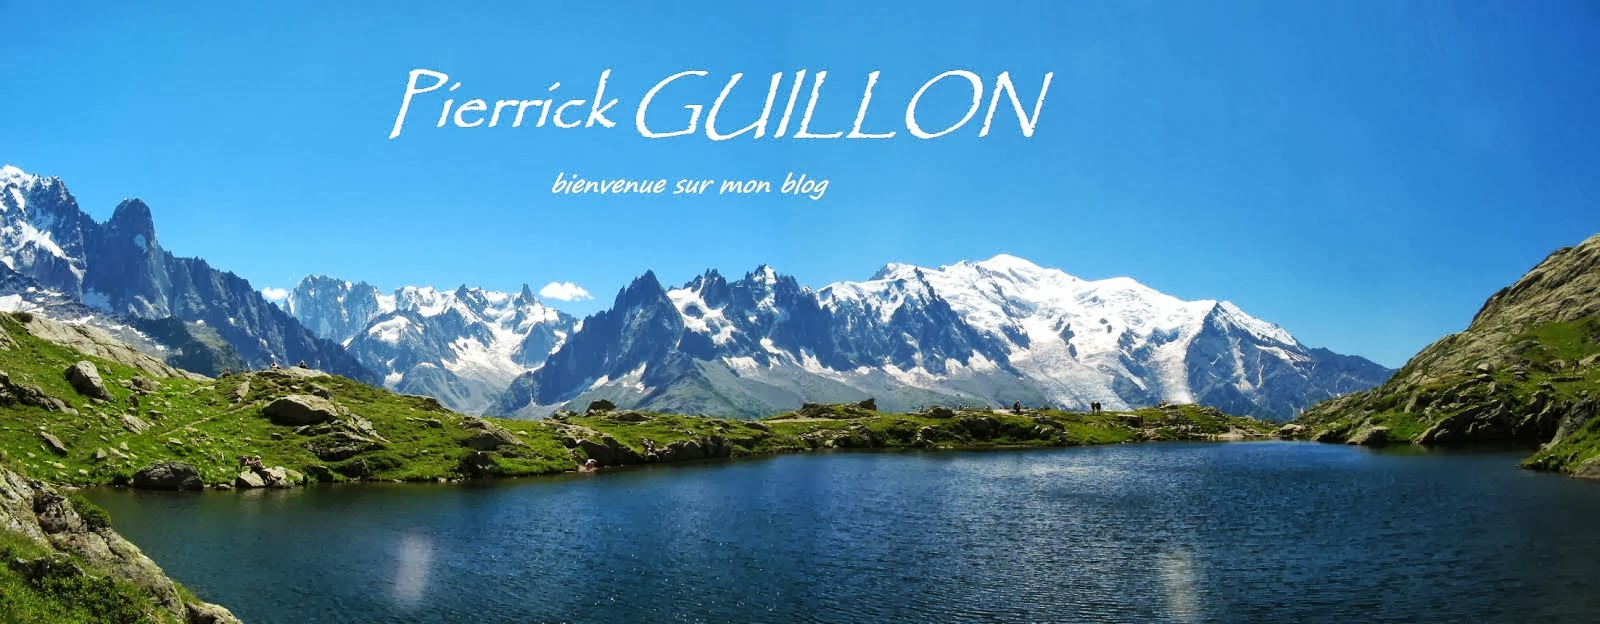 pierrick guillon